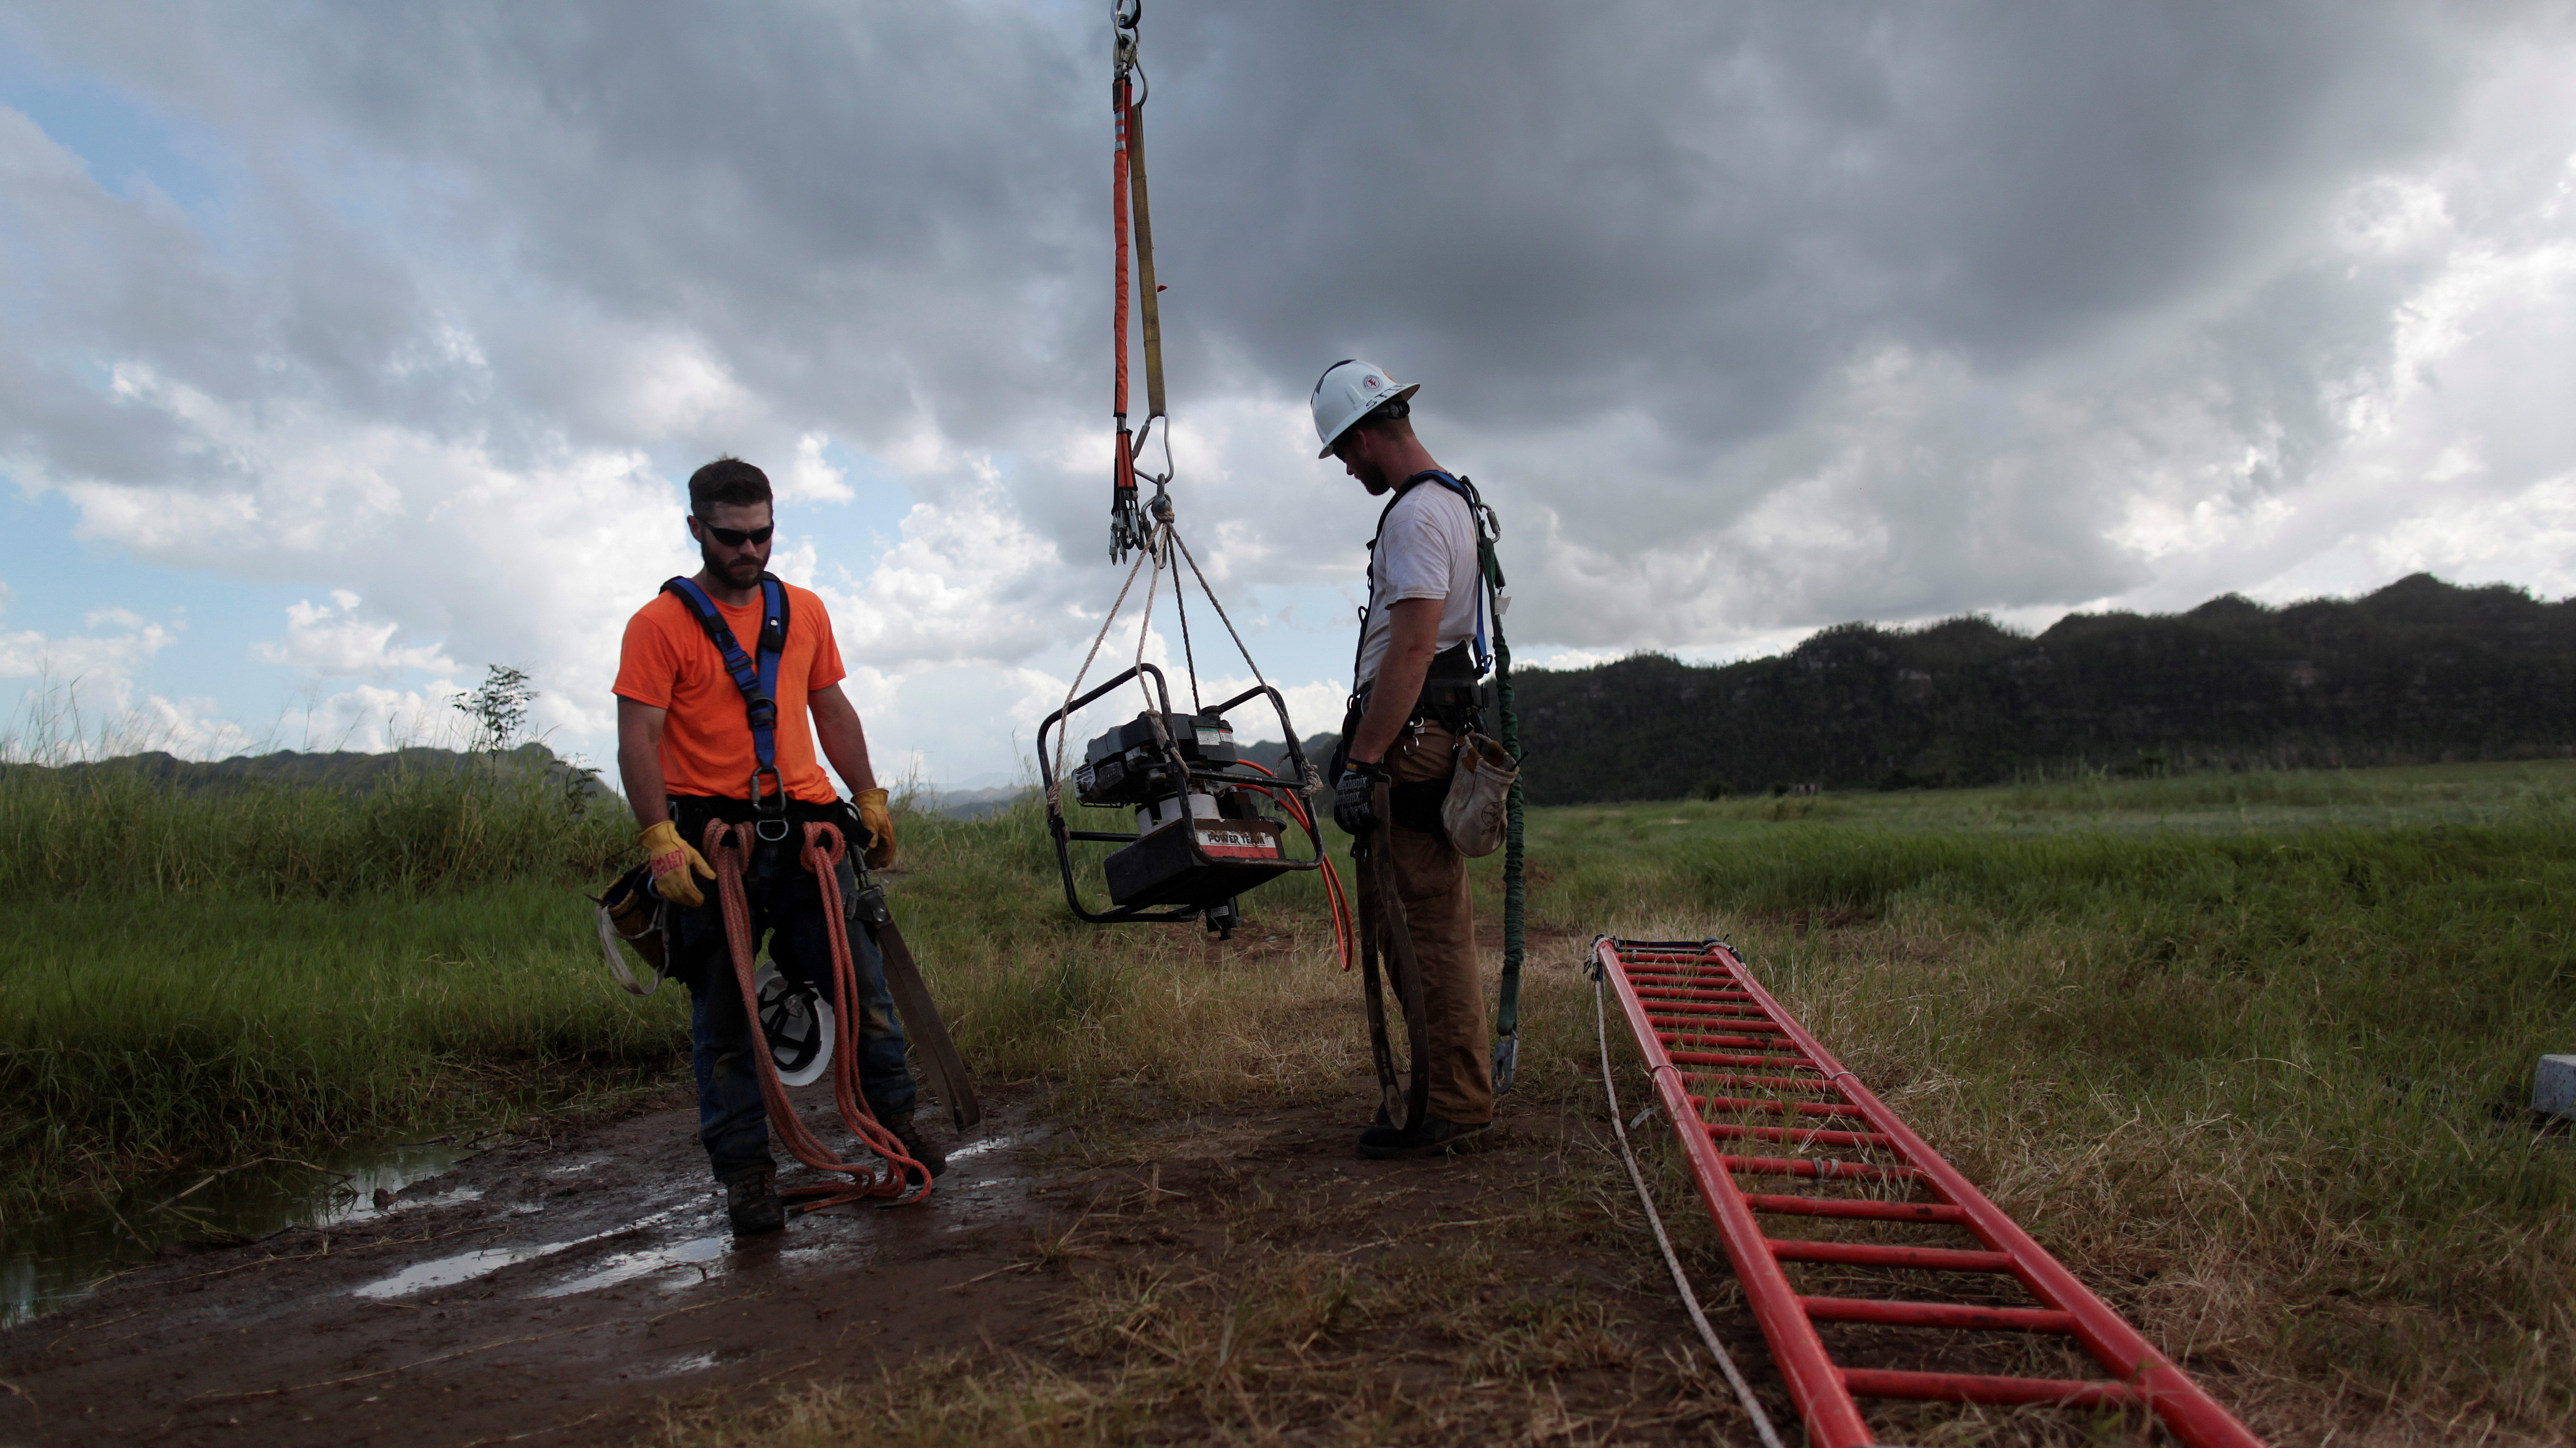 Workers from Montana-based Whitefish Energy Holdings help fix the island's power grid, damaged during Hurricane Maria in September, in Manati